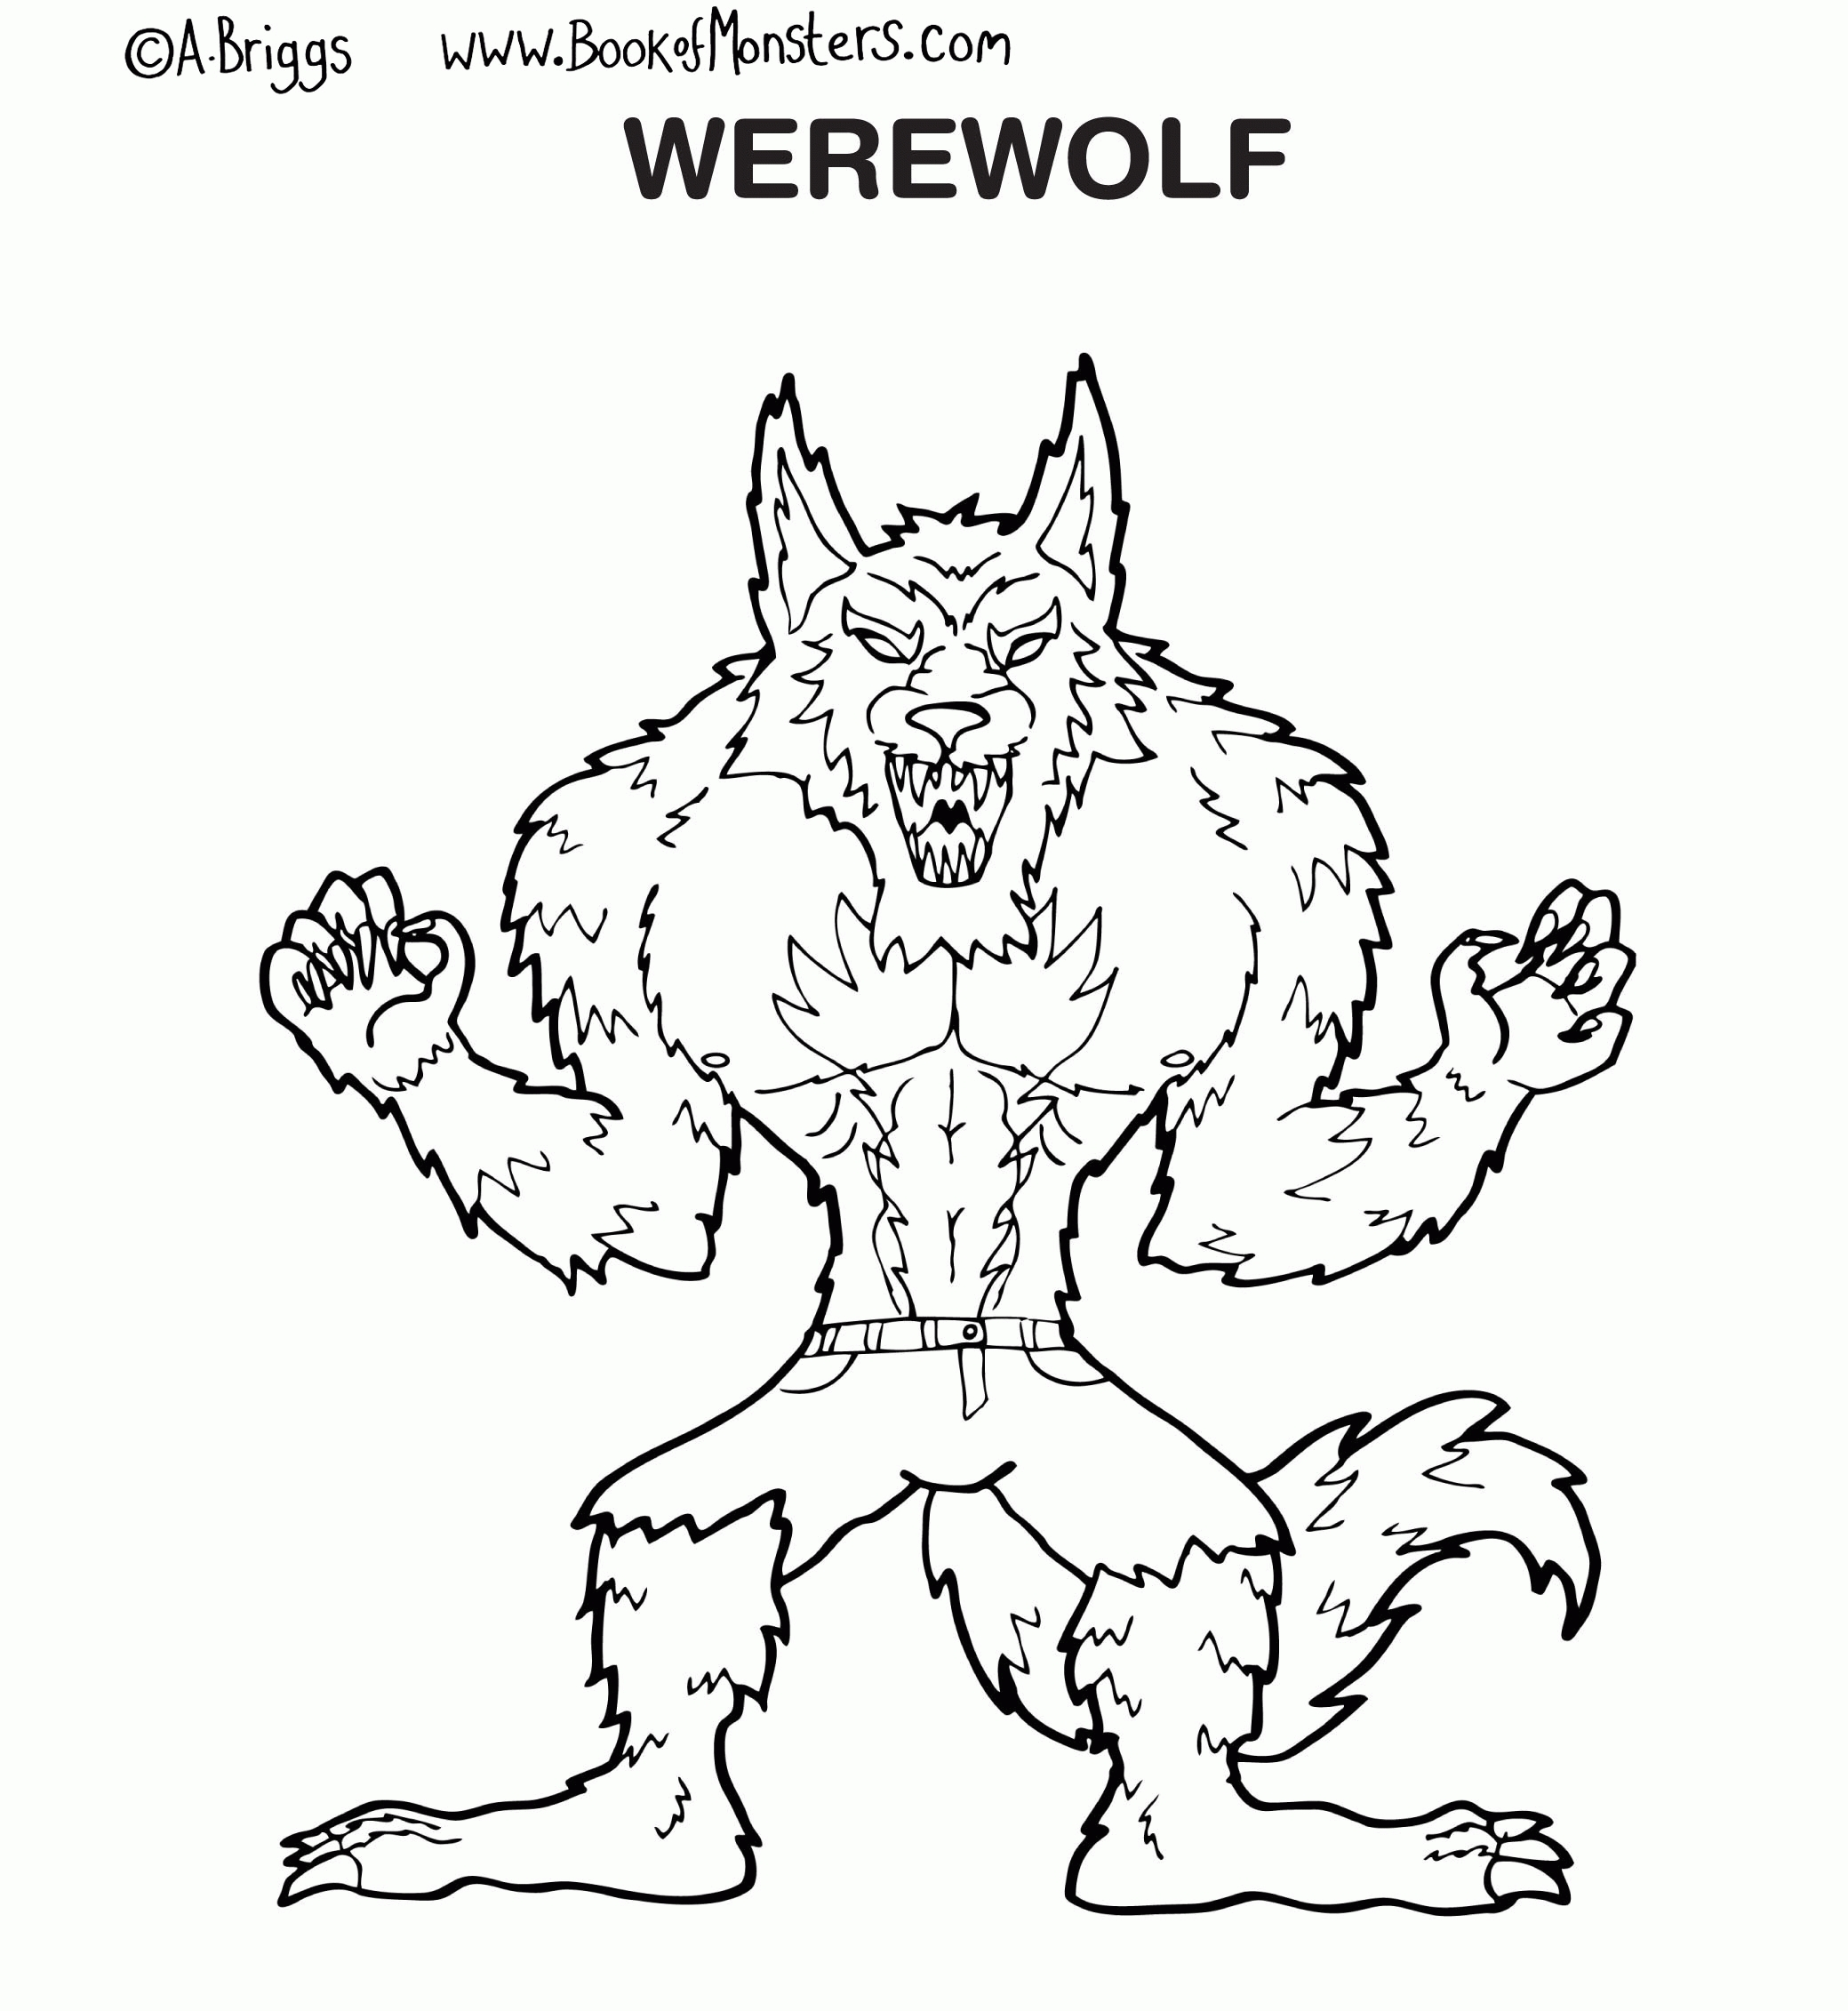 ben 10 coloring pages - werewolf coloring page